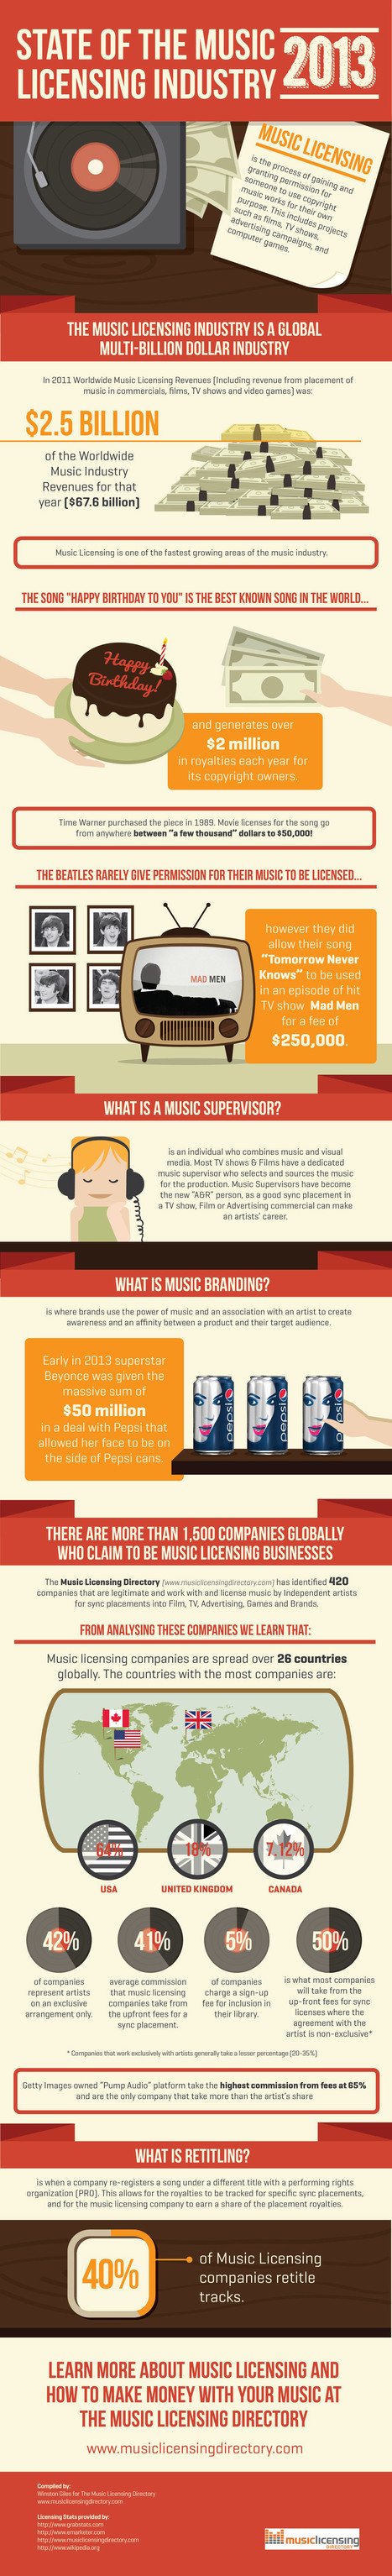 State Of The Music Licensing Industry 2013 | PRODUCTION of Video Music clips and songs | Scoop.it